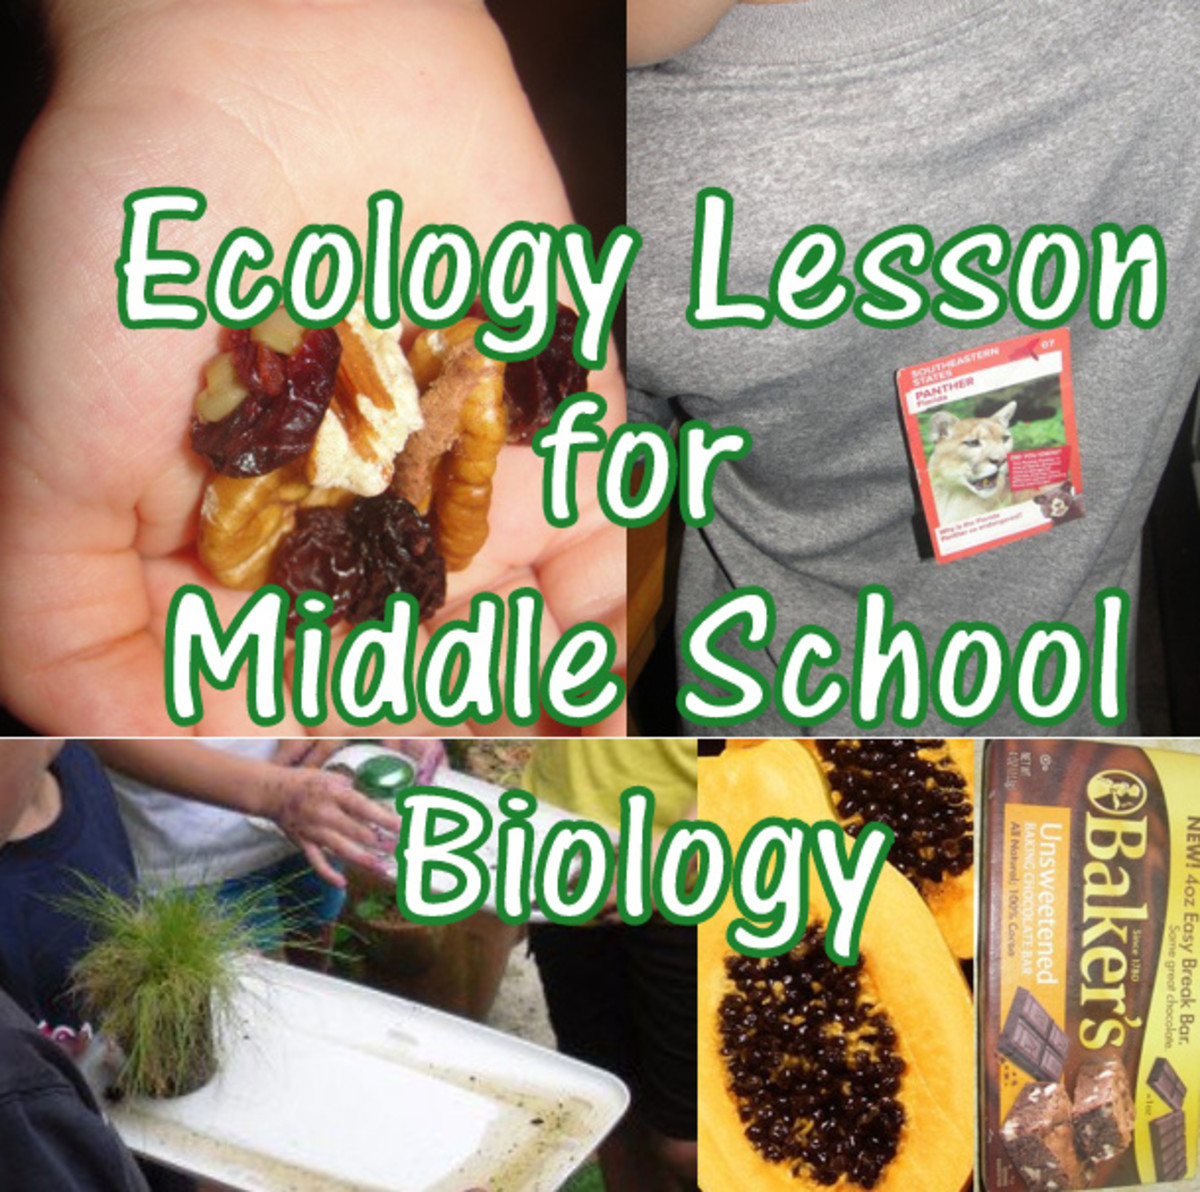 Ecology Lesson for Middle School Biology